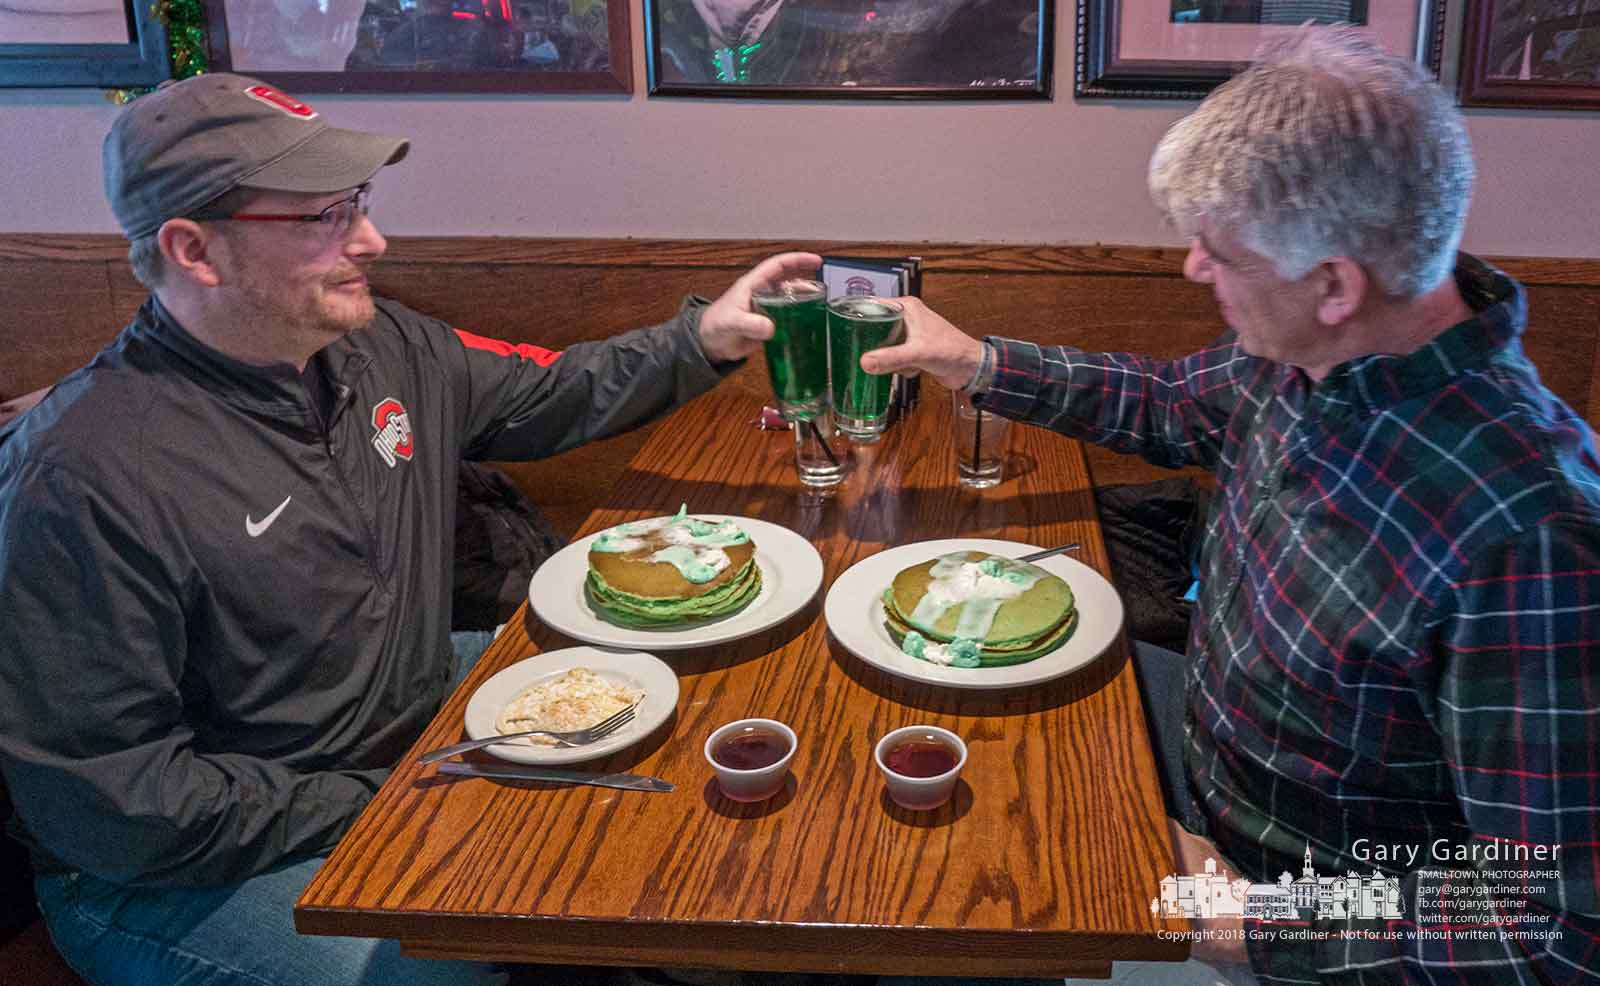 Two customers celebrating St. Patrick's Day salute the day by tapping beer glasses filled with green beer before eating green pancakes covered in green butter at Jimmy V's in Uptown Westerville. My Final Photo for March 17, 2018.